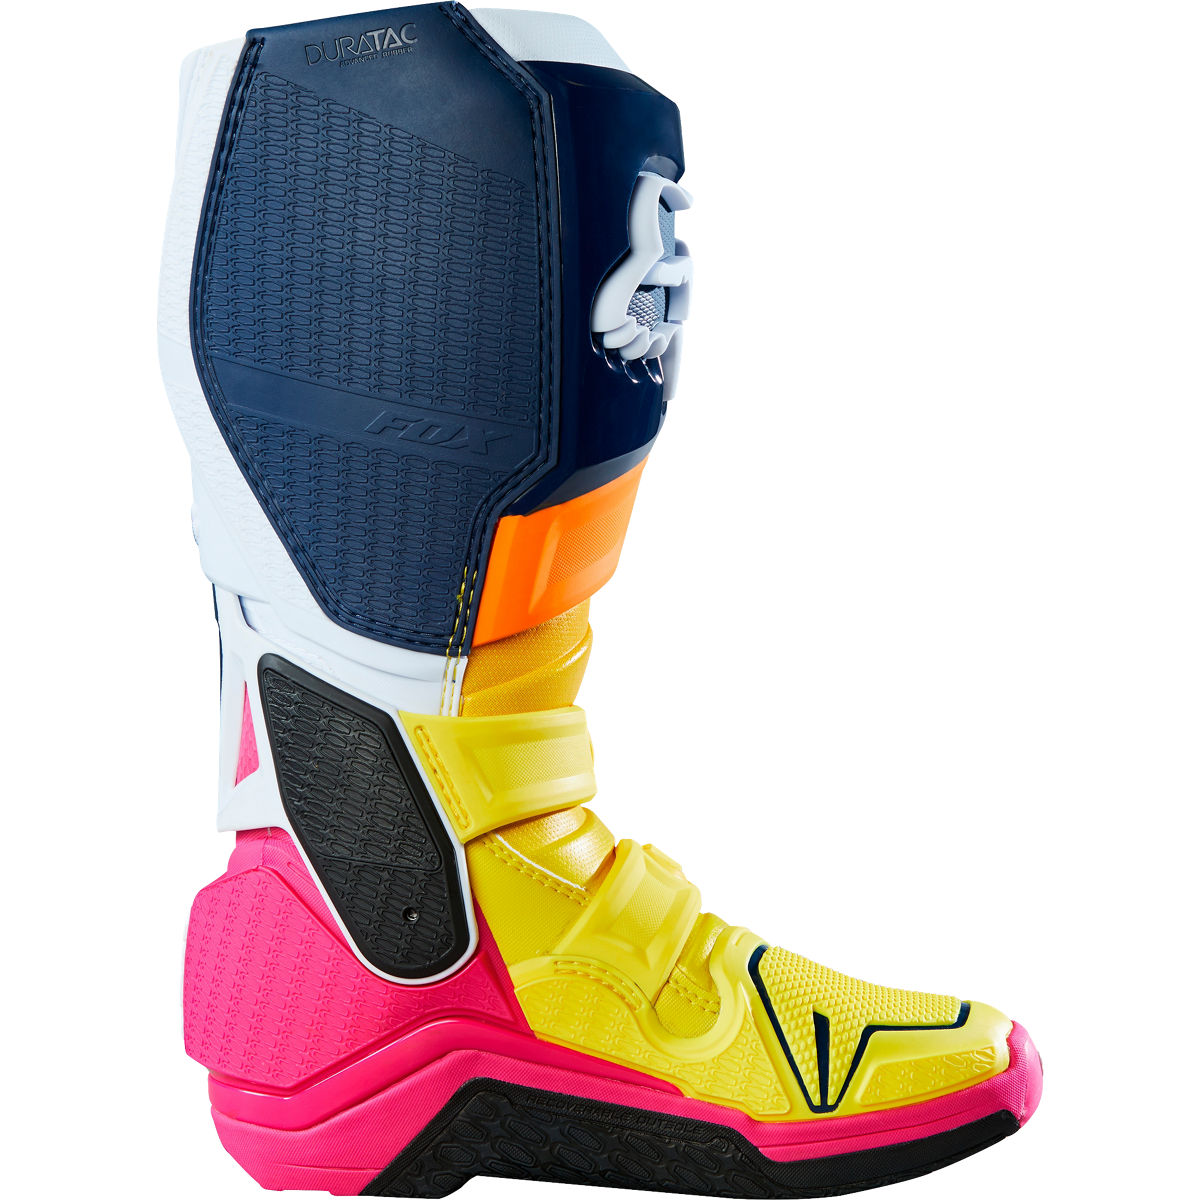 24352-922 Fox Racing 2019 Instinct Limited Edition Idol Motocross Boots Bottes Offraod Stiefel Enduro Crosslaarzen